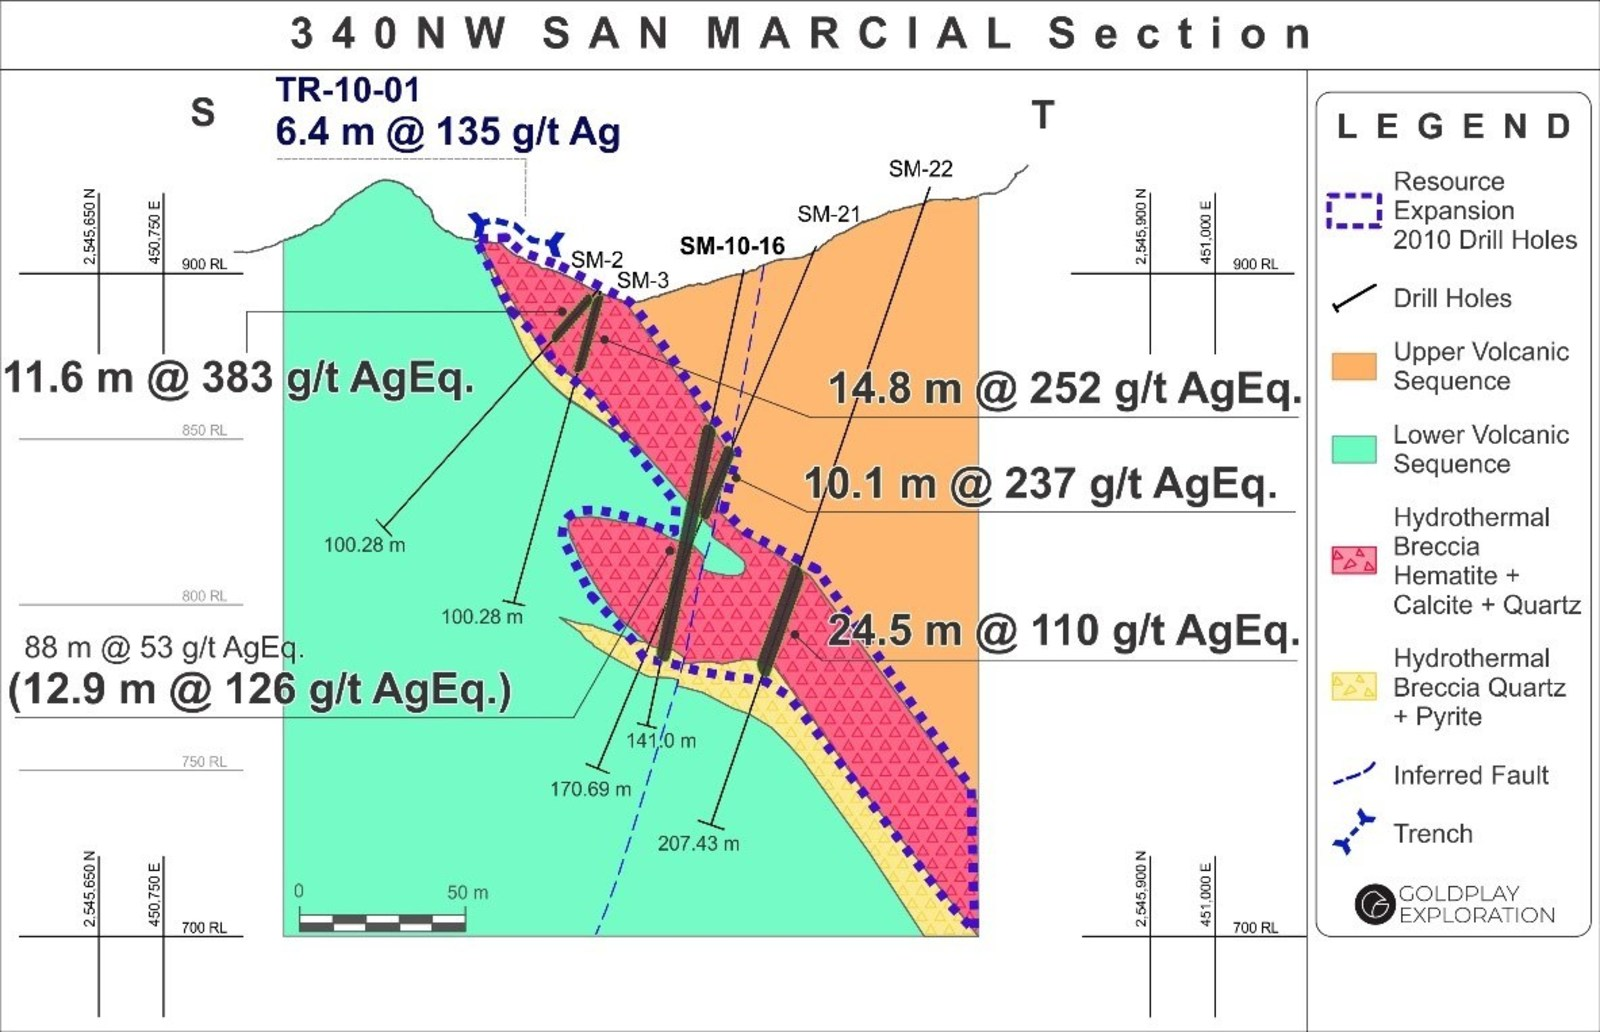 Figure 6: San Marcial Cross Section S-T